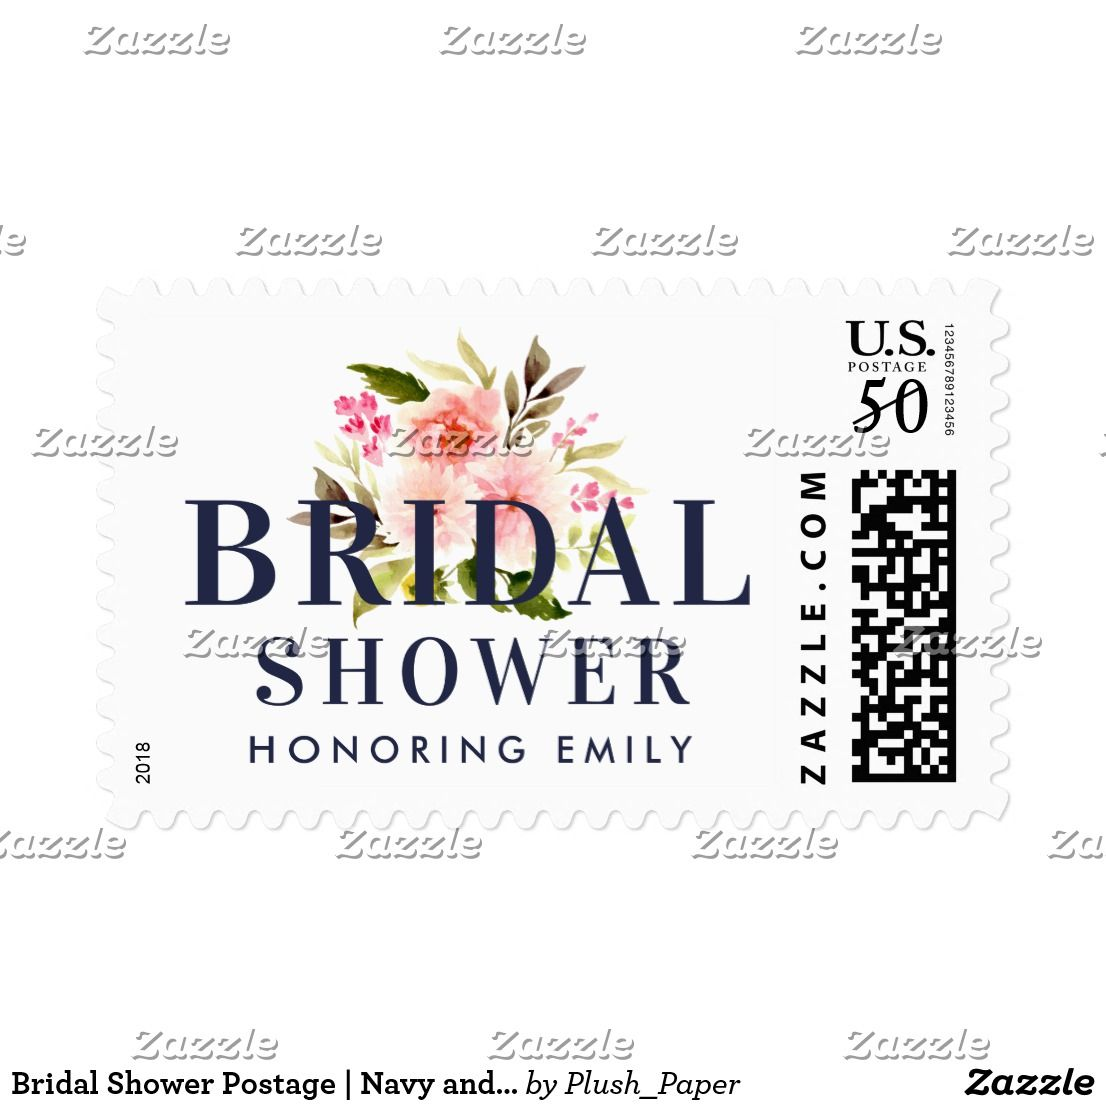 bridal shower postage navy and pink watercolor custom wedding bridal shower postage stamps feature midnight navy blue custom text that can be